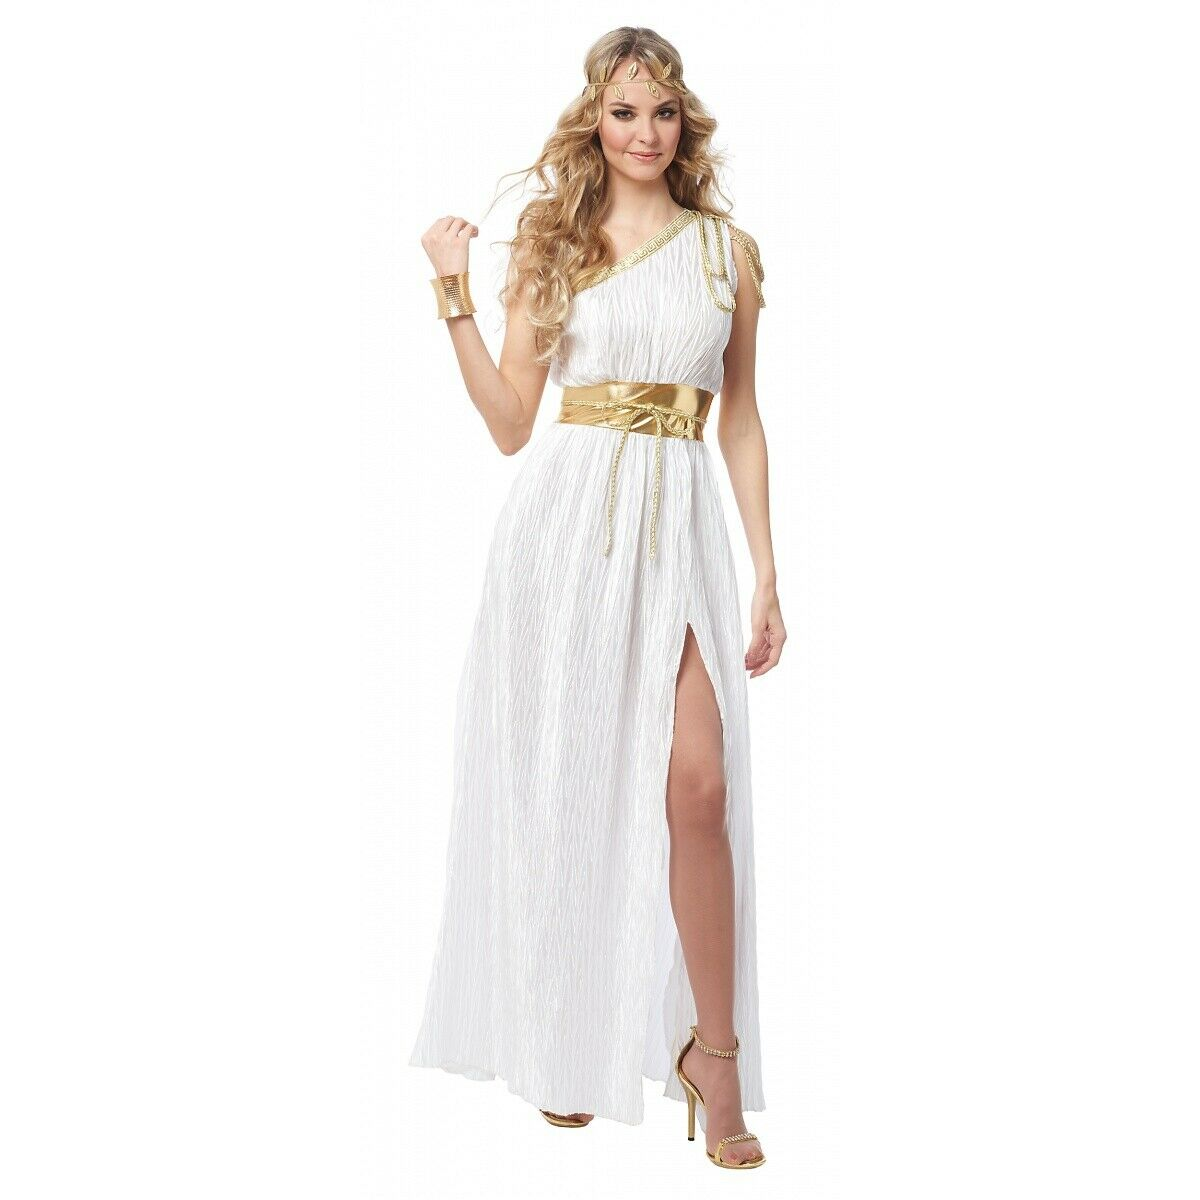 greek goddess costume adult aphrodite grecian halloween fancy dress